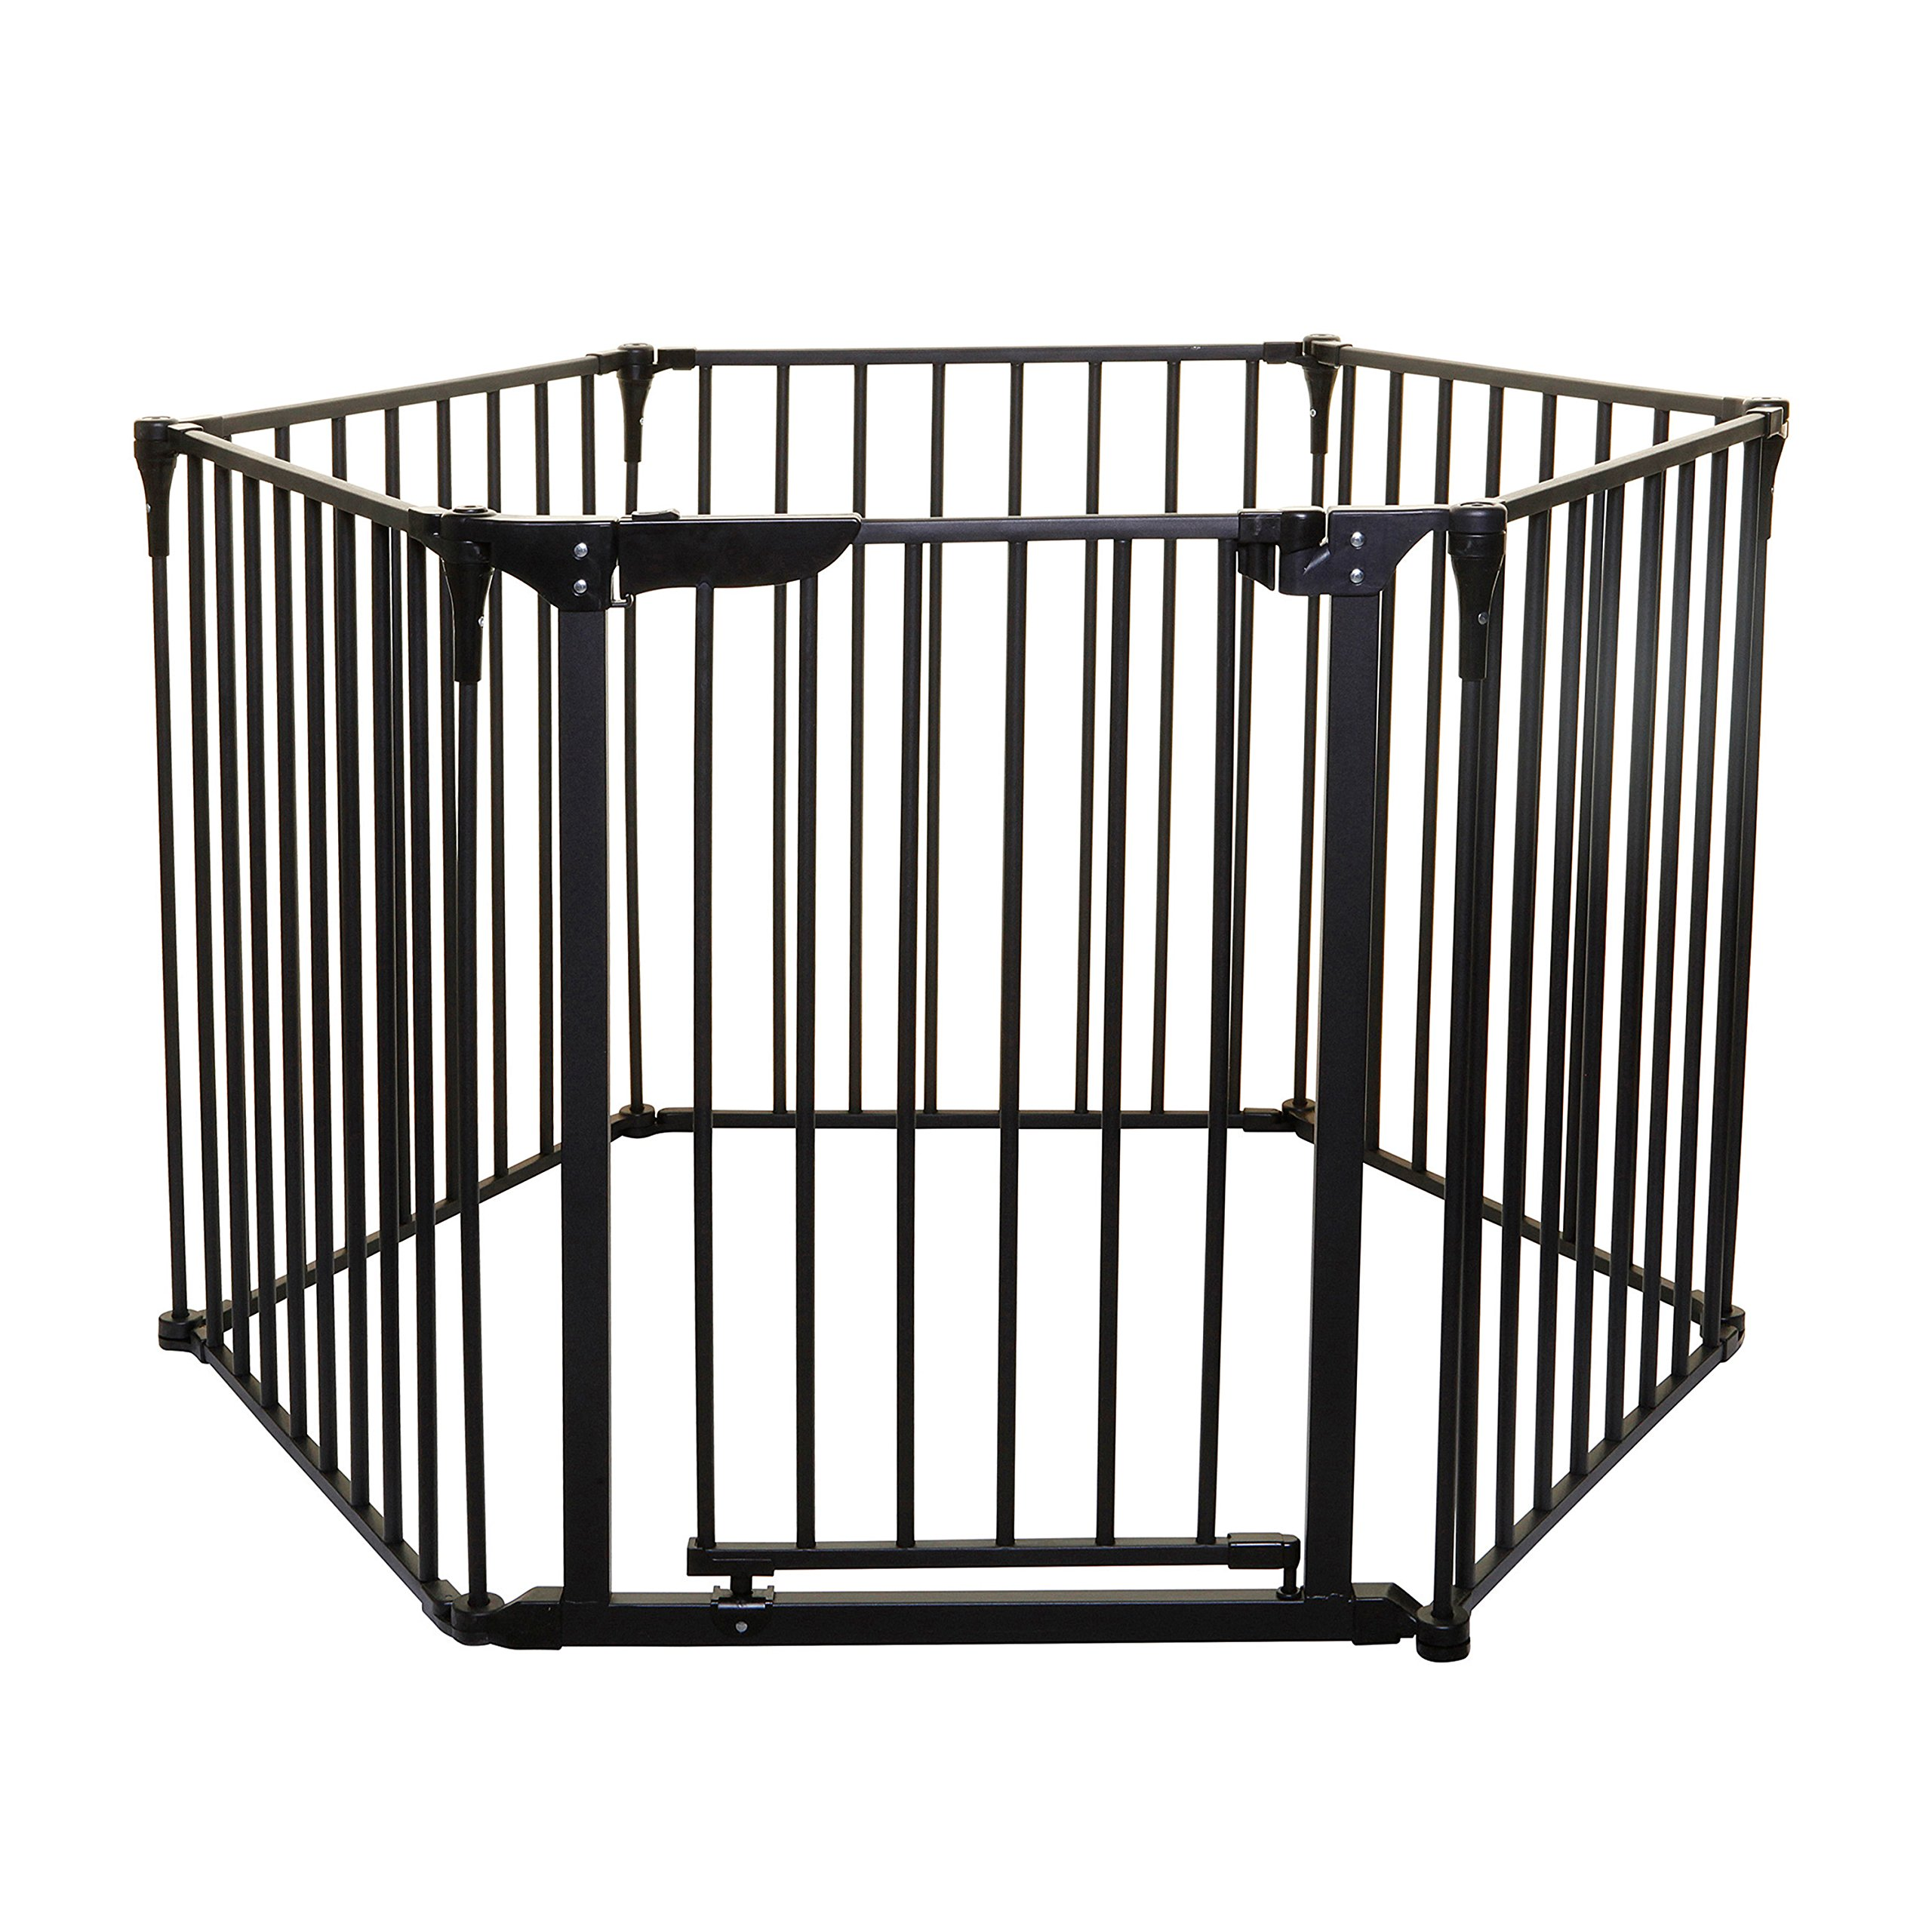 Dreambaby Royale Converta 3 in 1 Play-Yard, Fireplace Guard, and Wide Barrier Gate (Black)